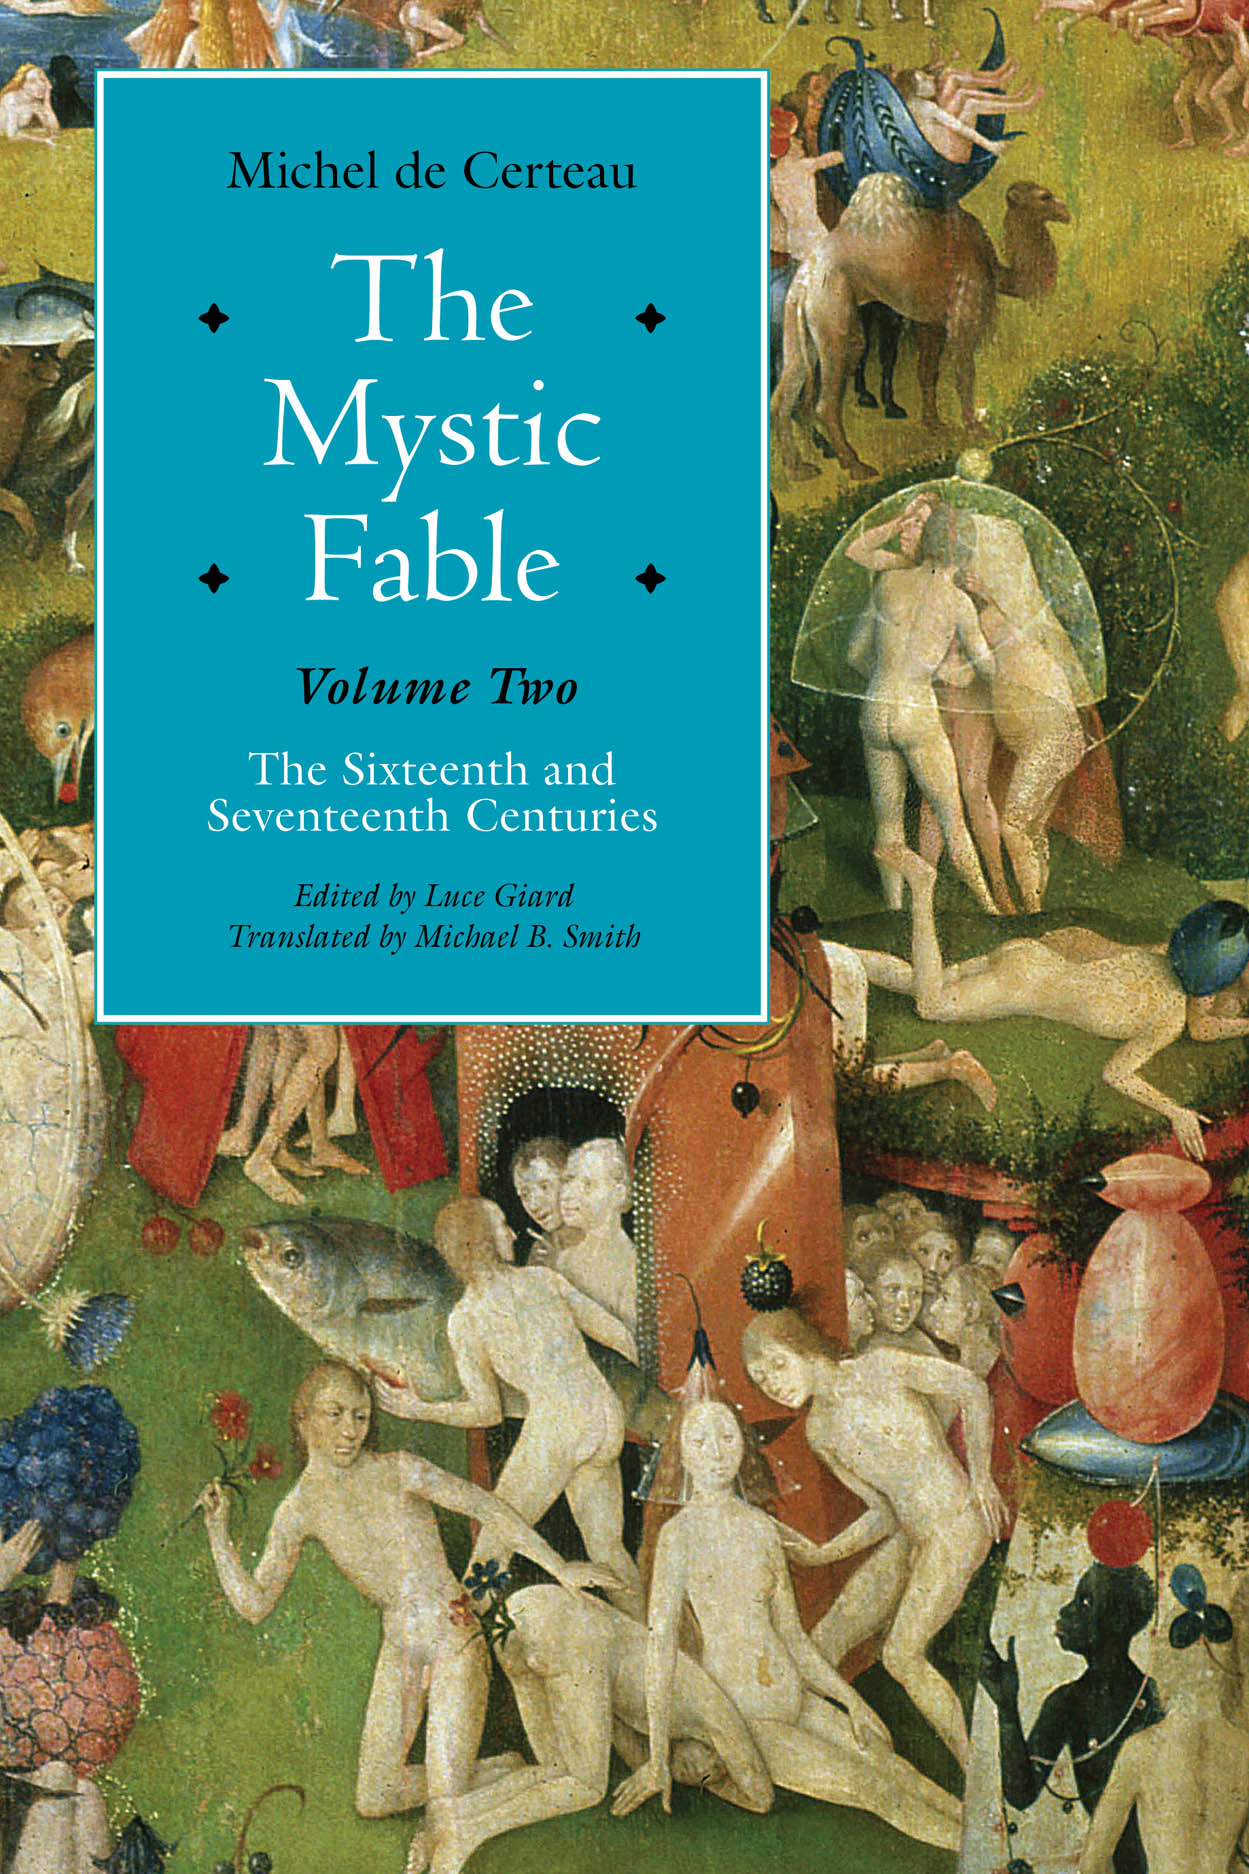 The Mystic Fable, Volume Two